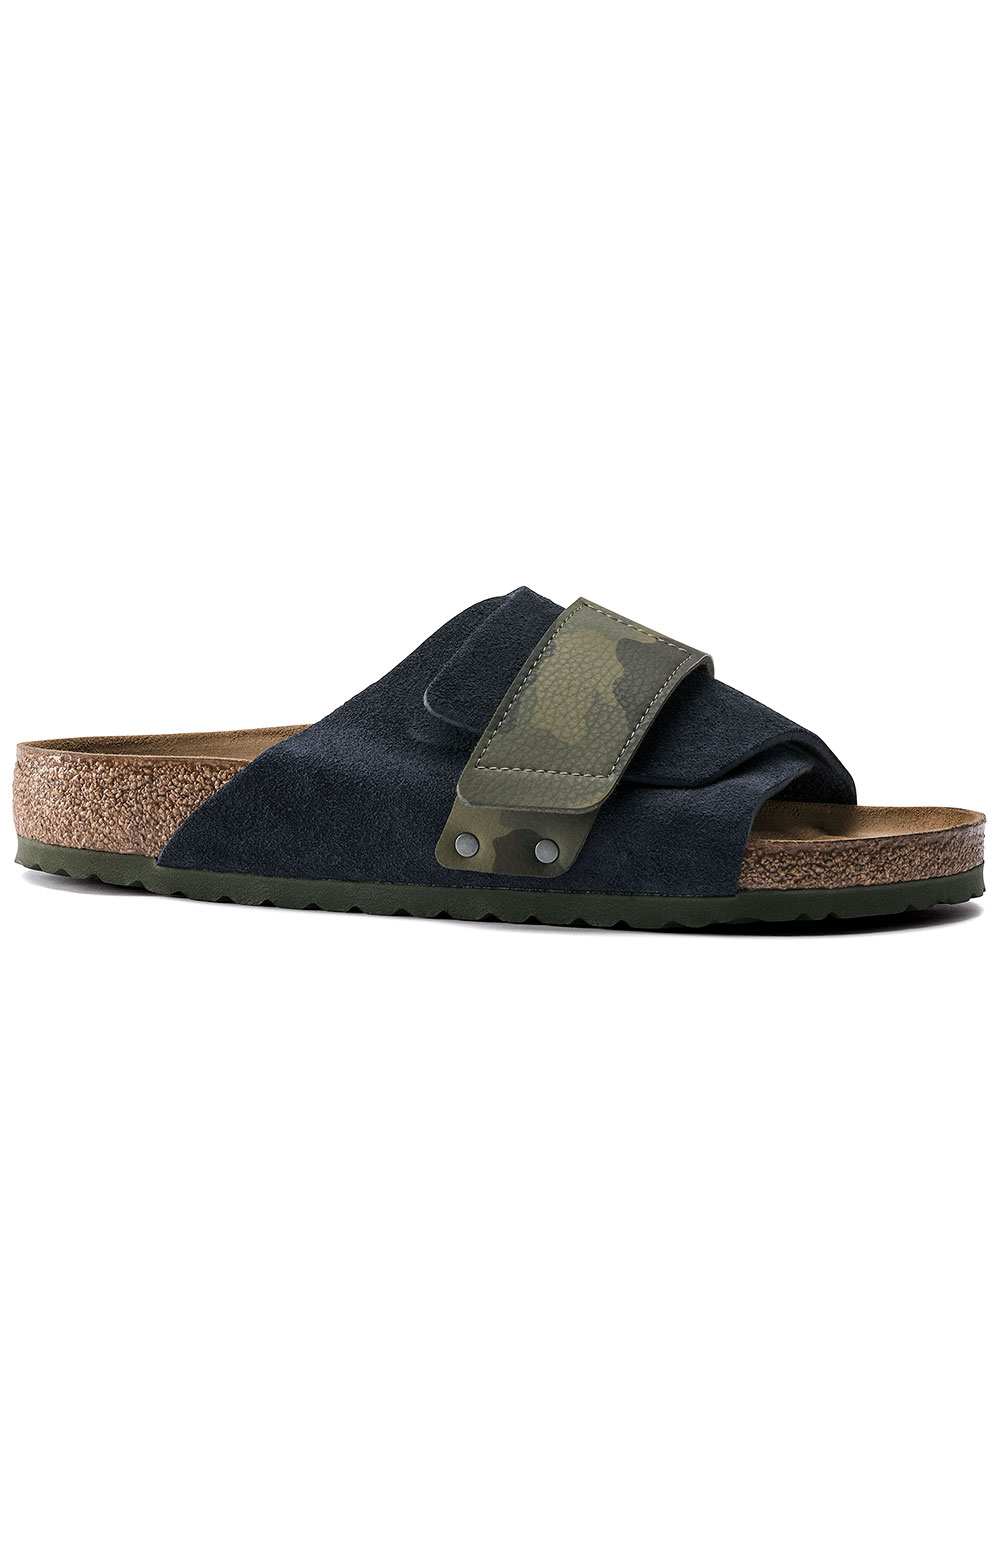 (1019737) Kyoto Sandals - Midnight Camo 3